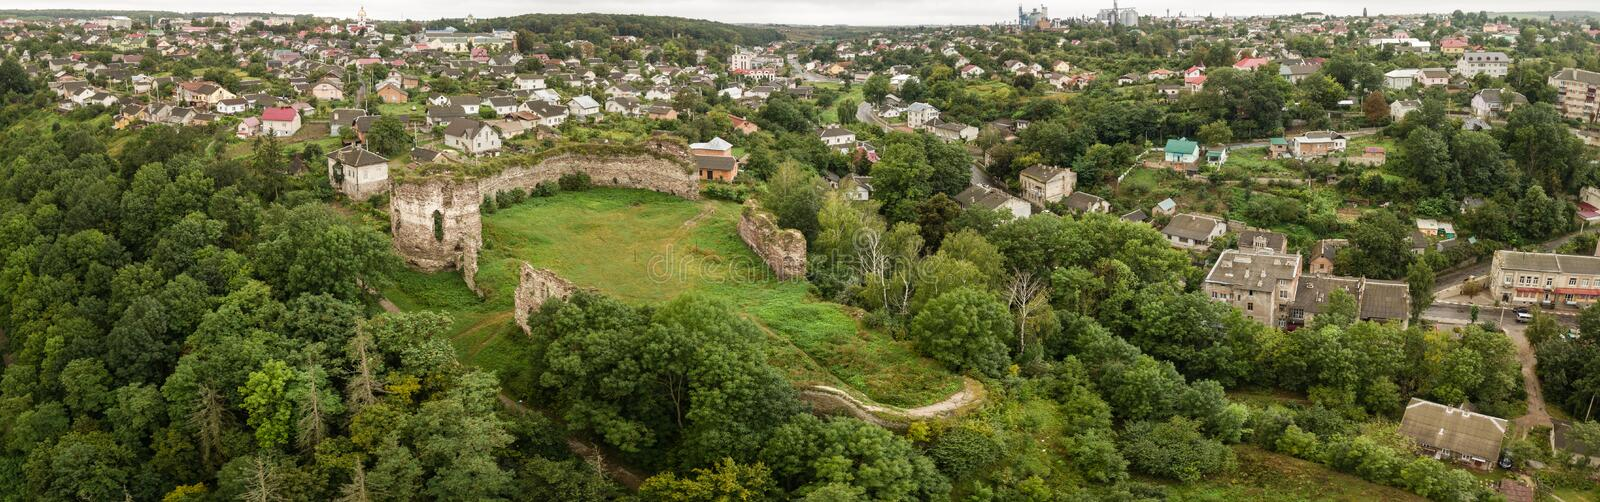 Aerial top view from drone to castle ruins in Buchach, Ternopil region, Ukraine. Famous ukranian sights - panoramic view from drone to castle ruins and city royalty free stock photography